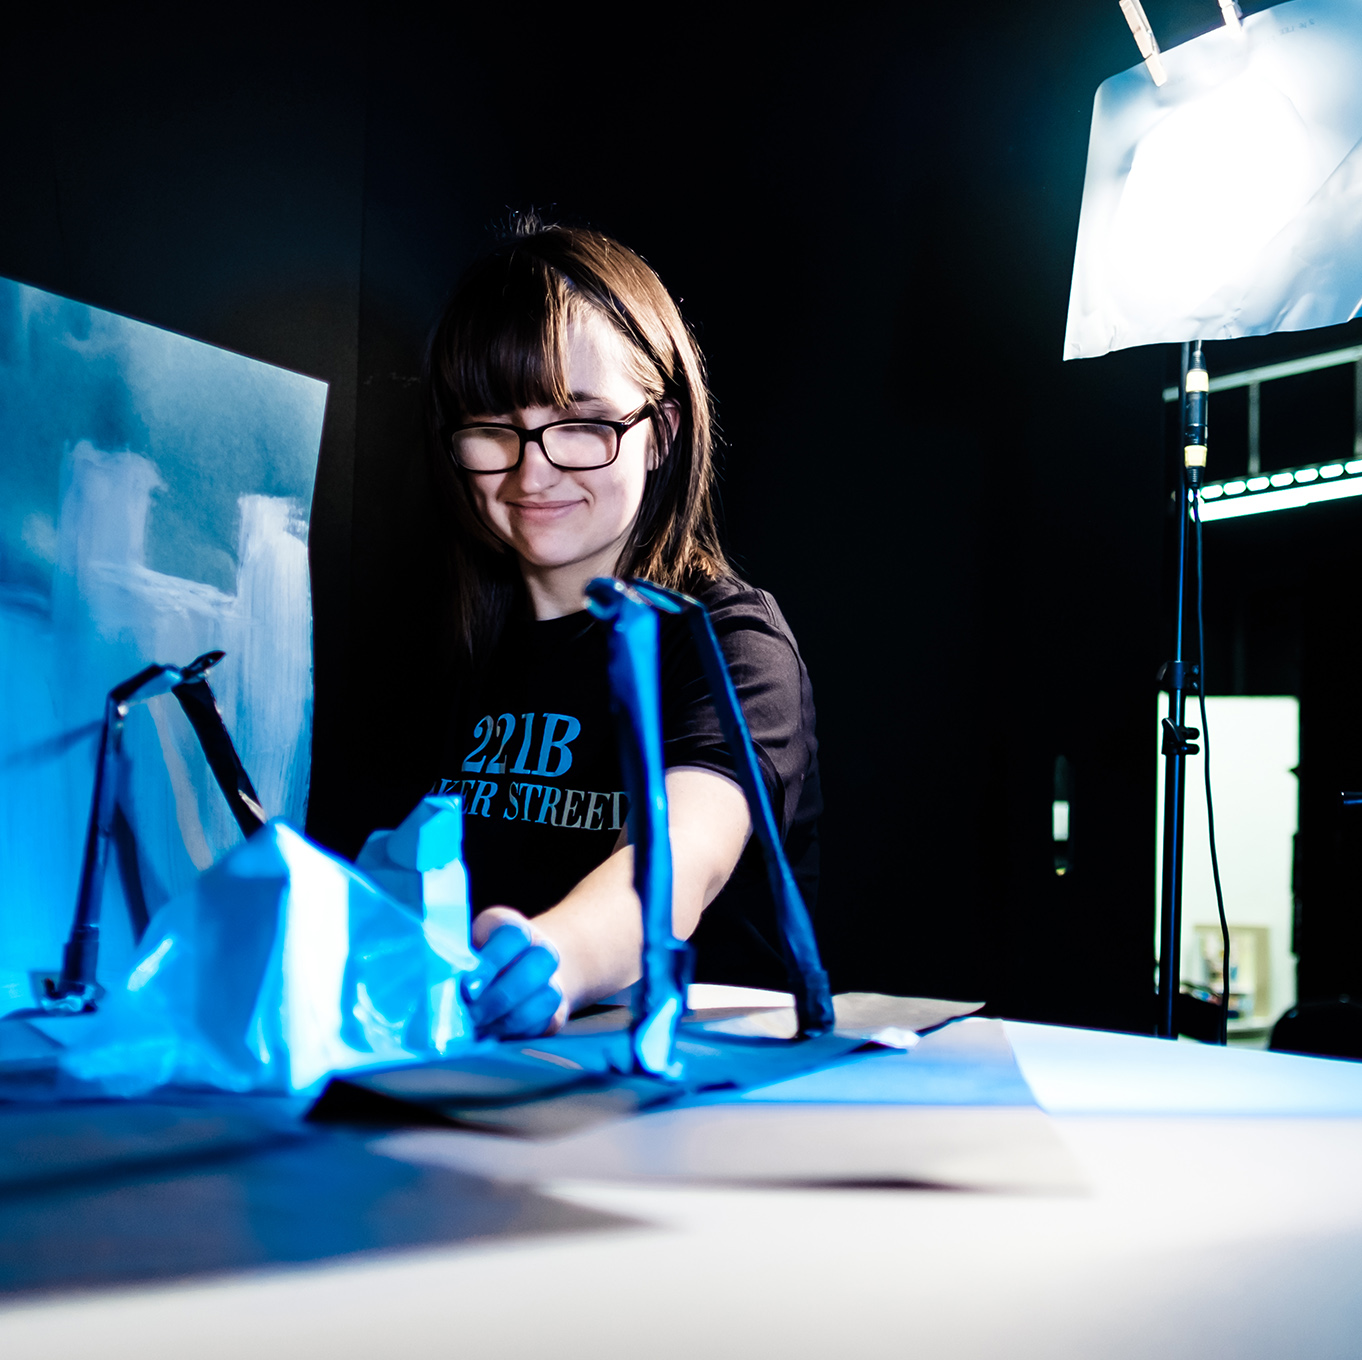 A student arranges props and models for a stop-motion animation shoot